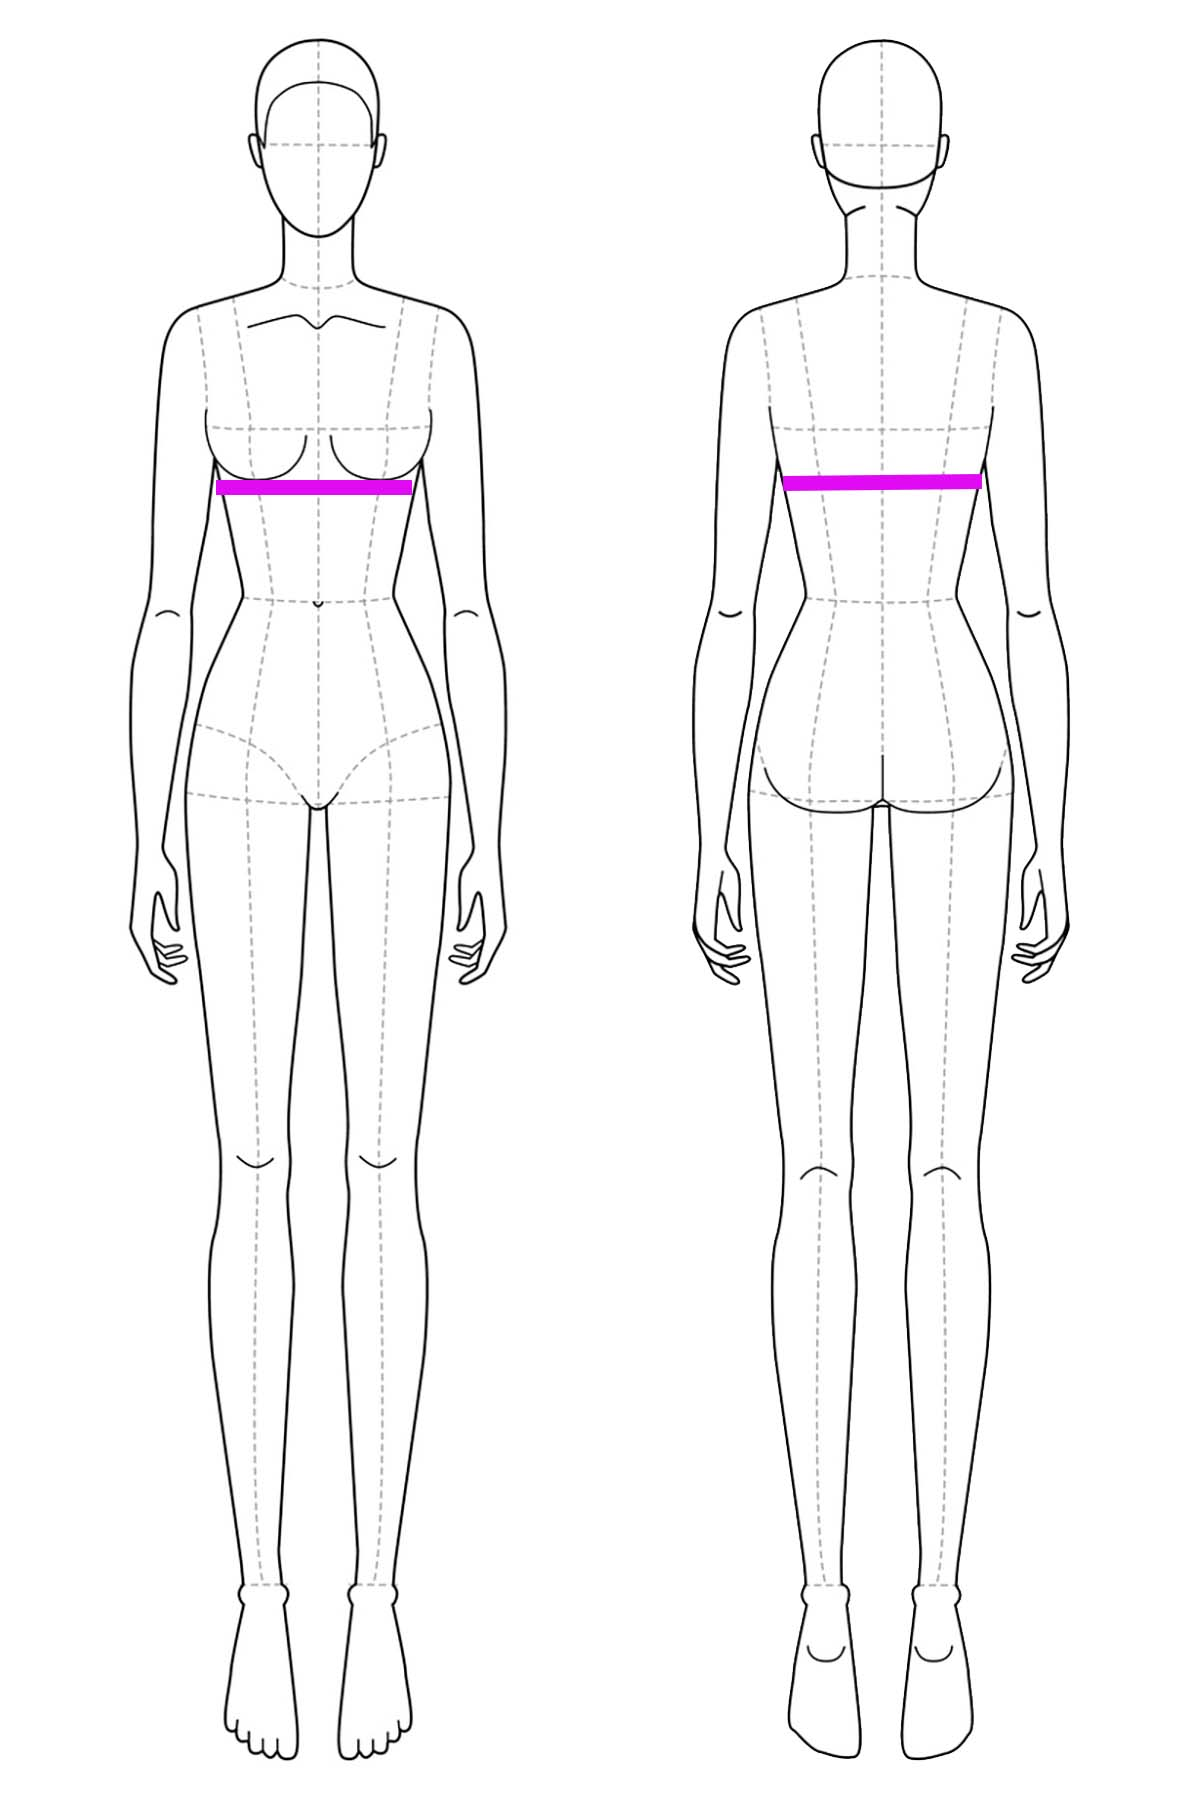 A set of line drawings of a female body, front and back views. Bright pink lines are drawn across it to indicate underbust measurement.